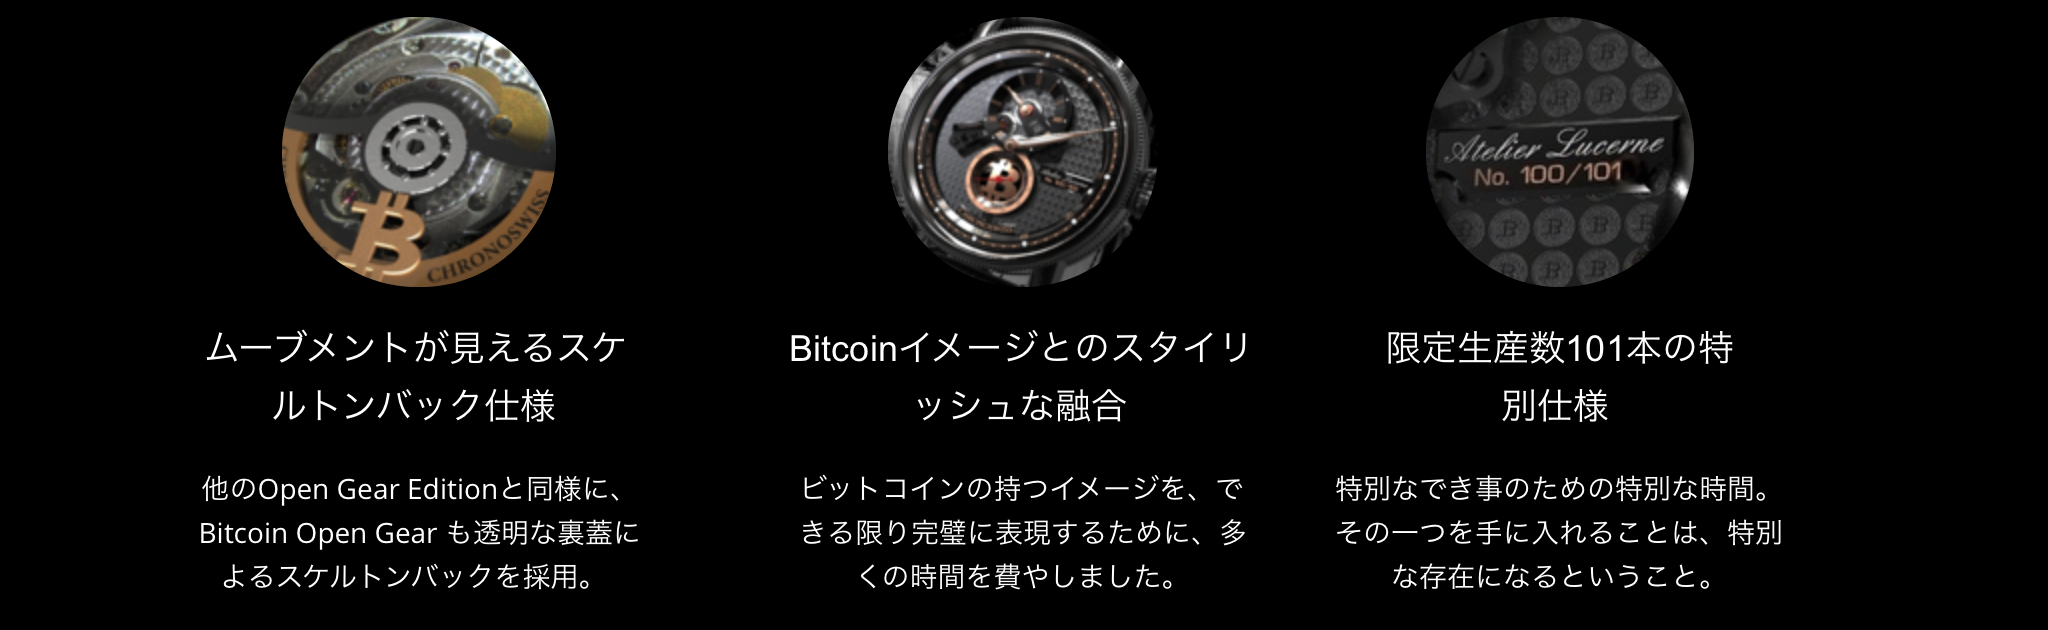 crypto-watch-img